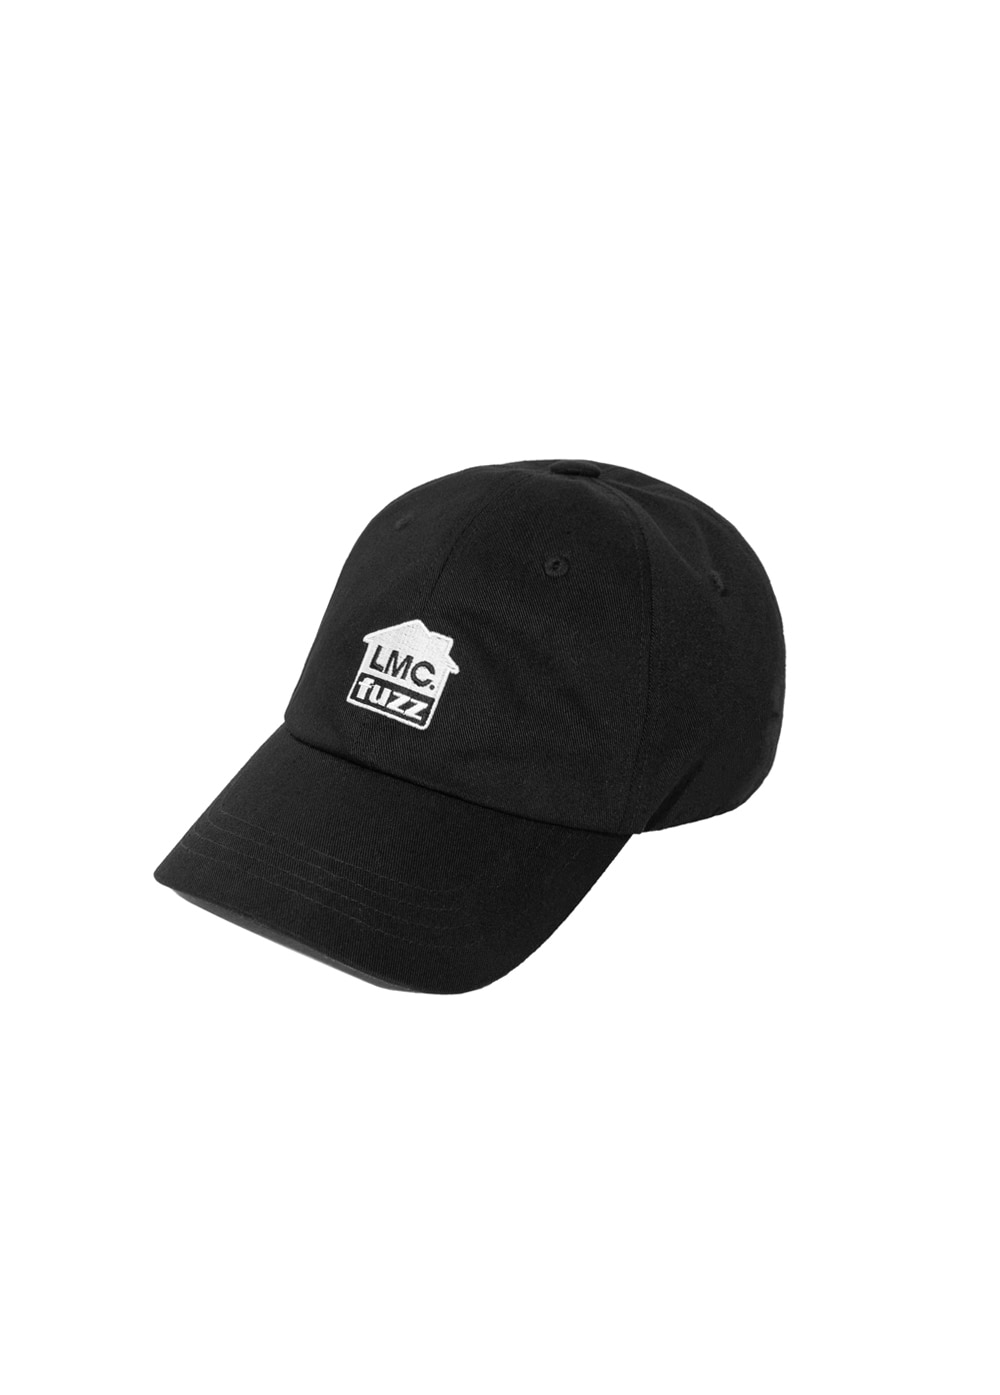 LMC x FUZZ HOUSE 6 PANEL CAP black